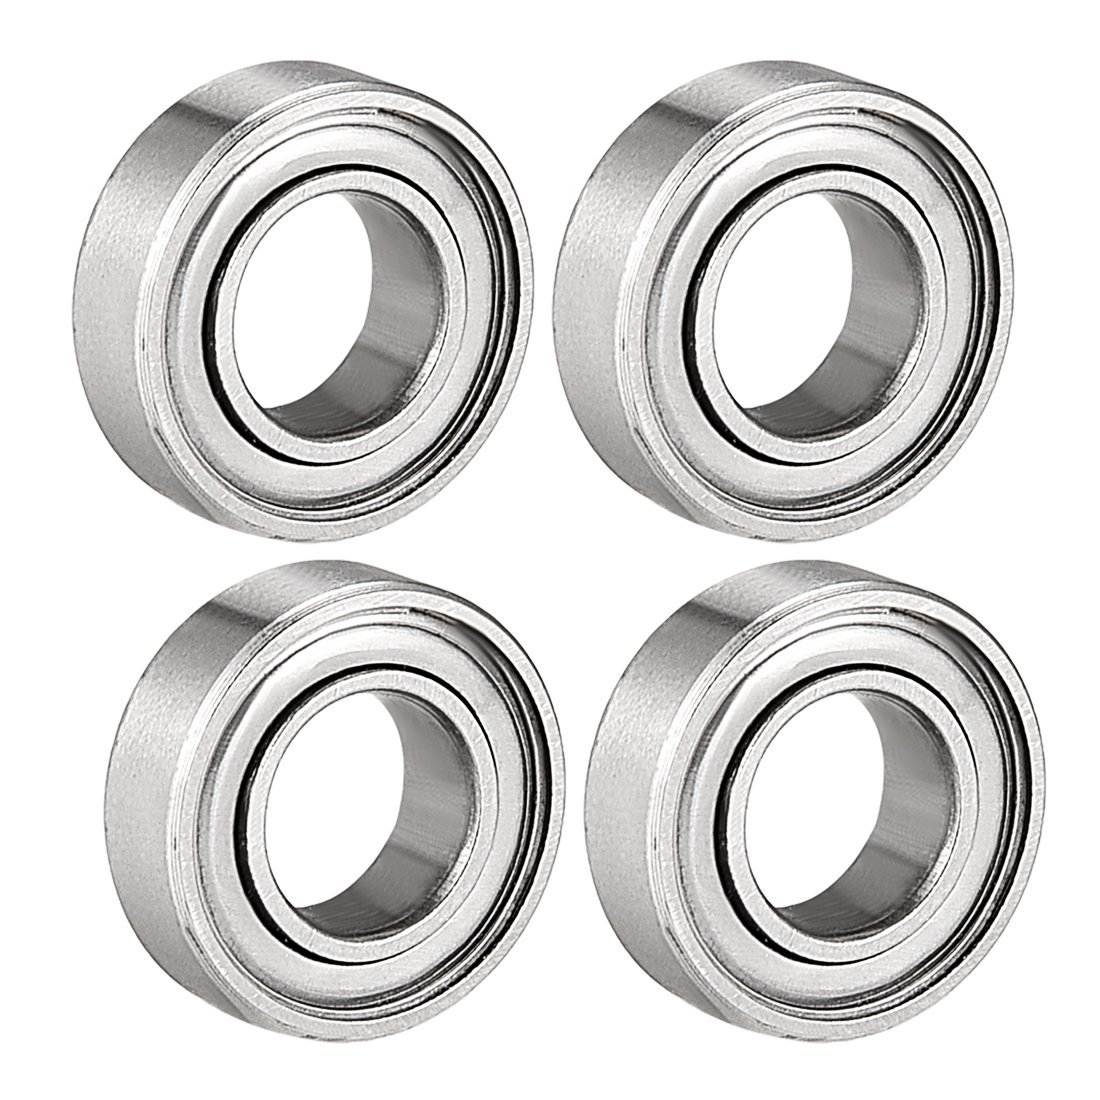 sourcing map 688ZZ Deep Groove Ball Bearing Double Shield 688-2Z 2080088, 8mm x 16mm x 5mm Carbon Steel Bearings (Pack of 4)